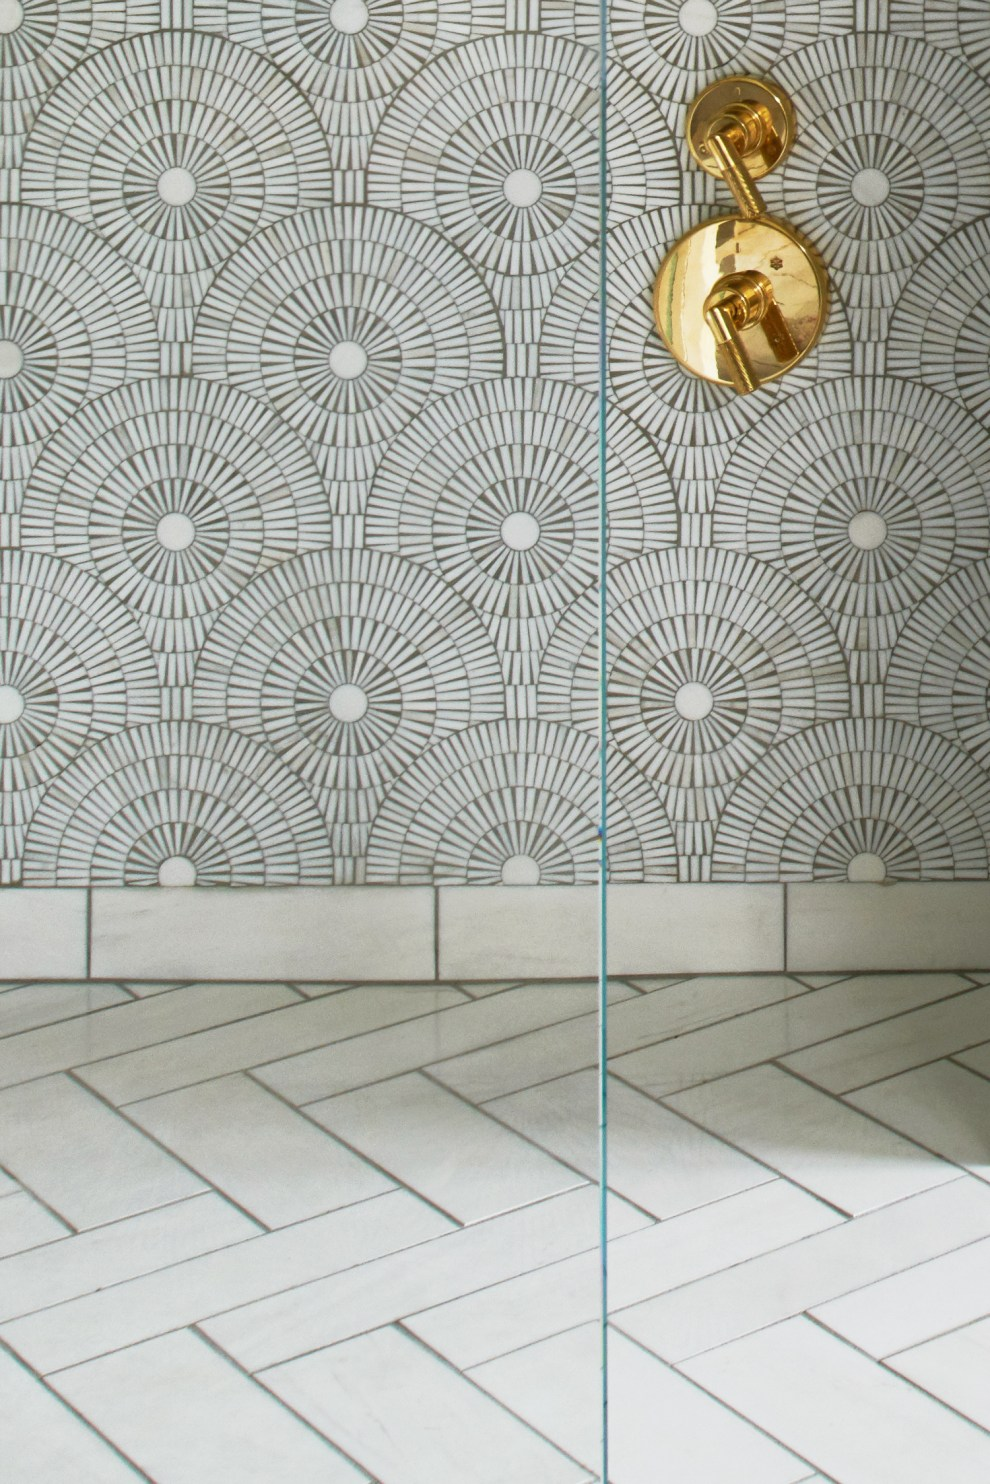 Bianco dolomiti mosaic and herringbone tile with brass plumbing